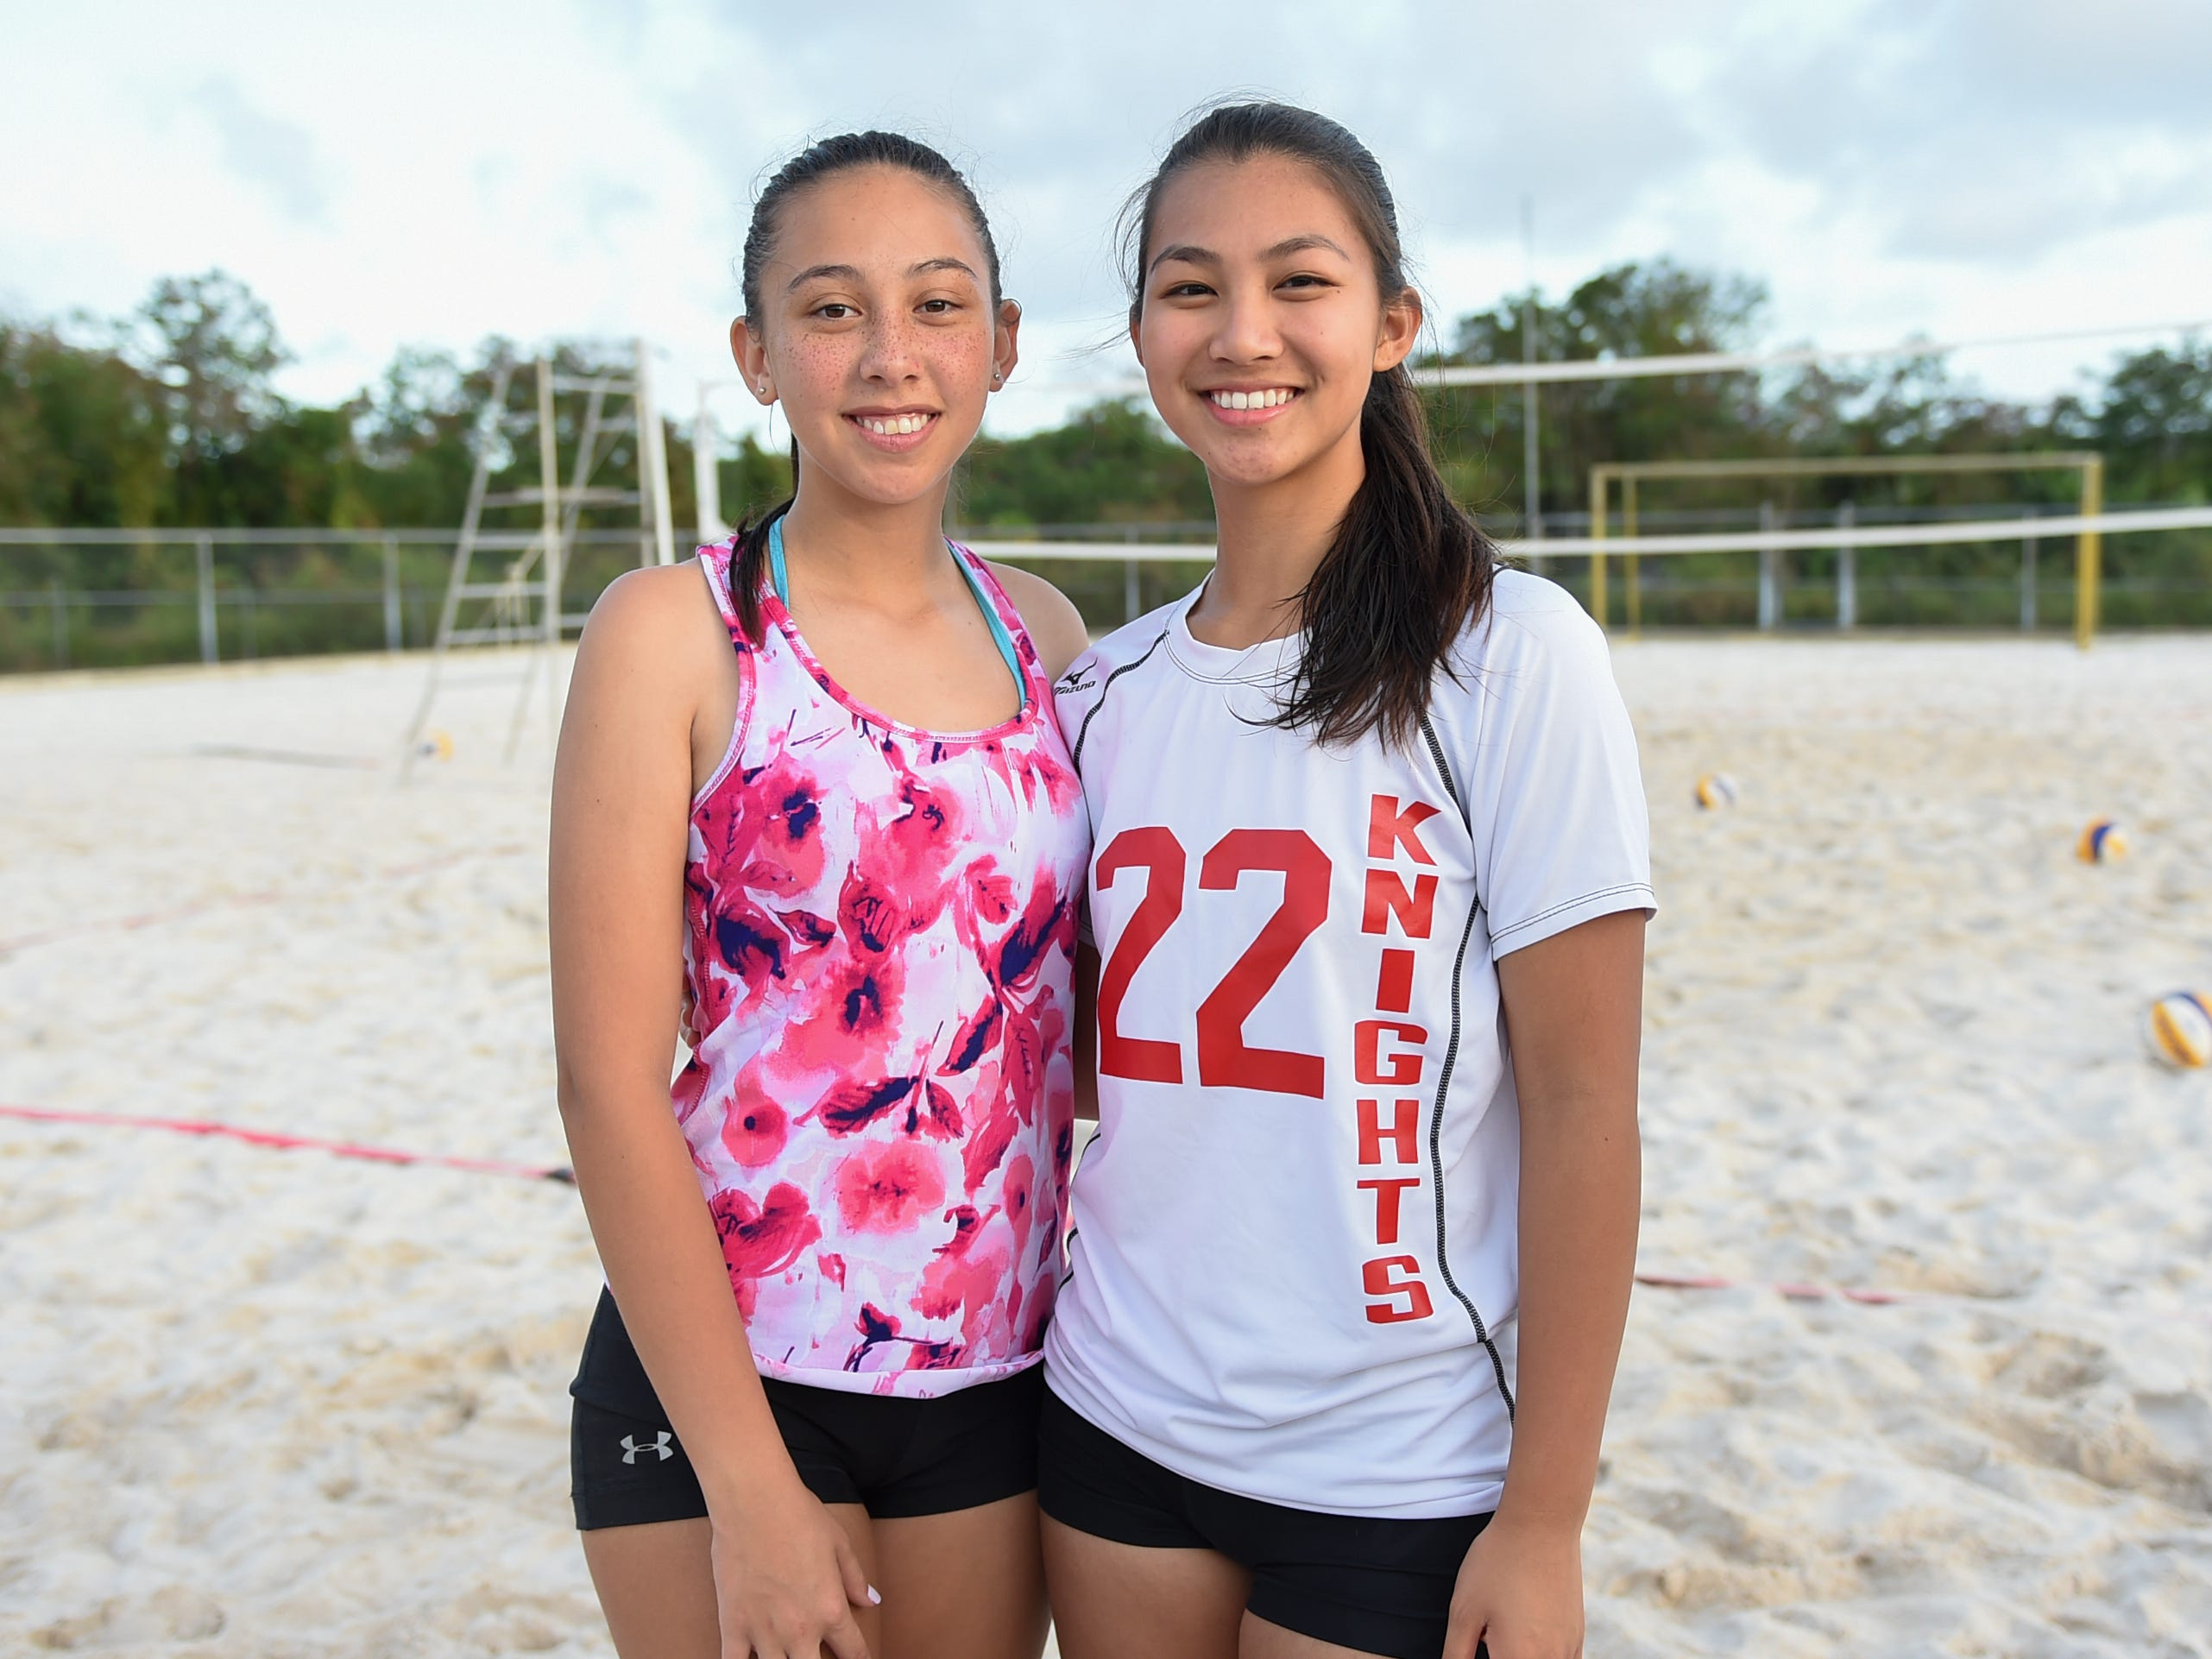 St. John's players Aileen Tseng, right, and Elisabeth Errett following the IIAAG Beach Volleyball championship game at the Guam Football Association National Training Center in Dededo, March 12, 2019.